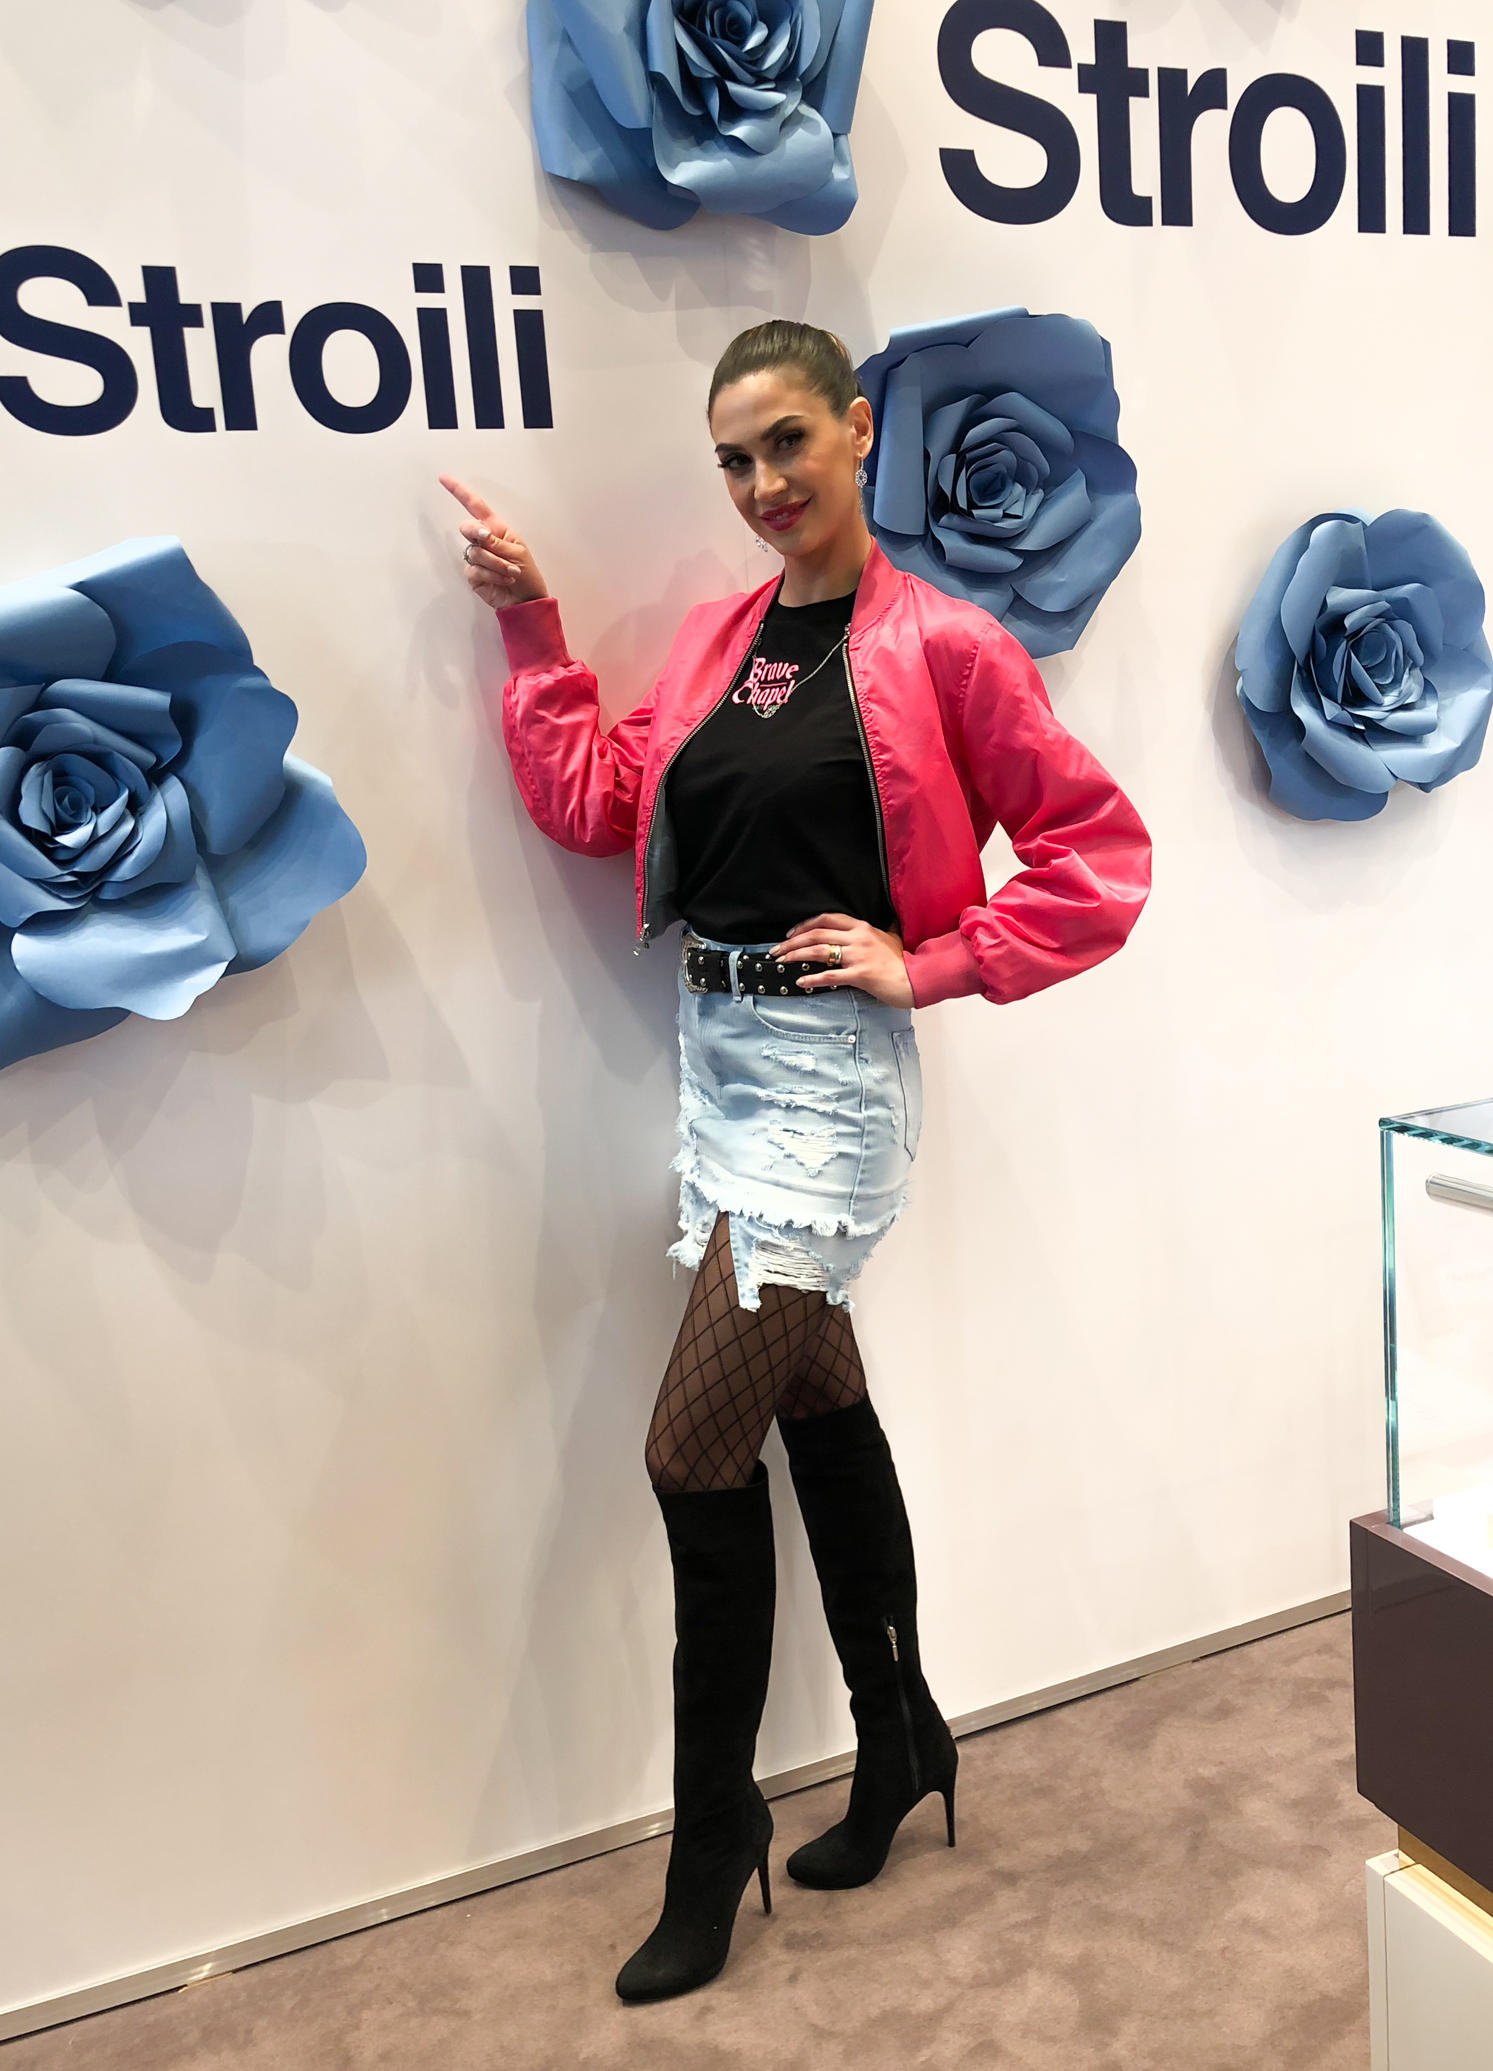 Jo Squillo: Stroili, new opening a Torino